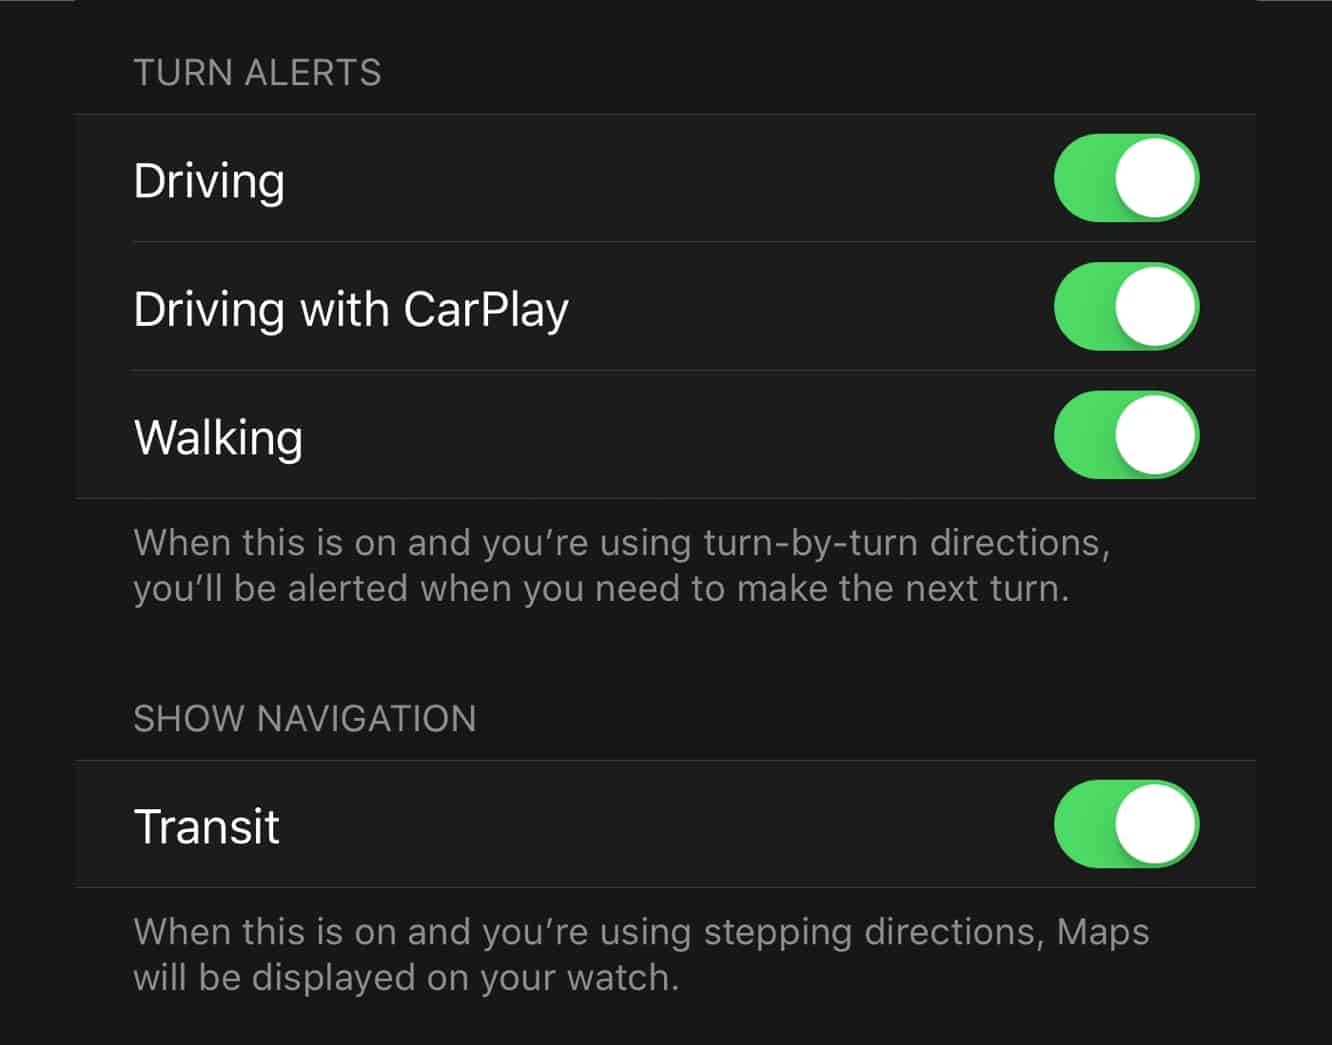 watchOS 5 will allow Apple Maps alerts to be customized